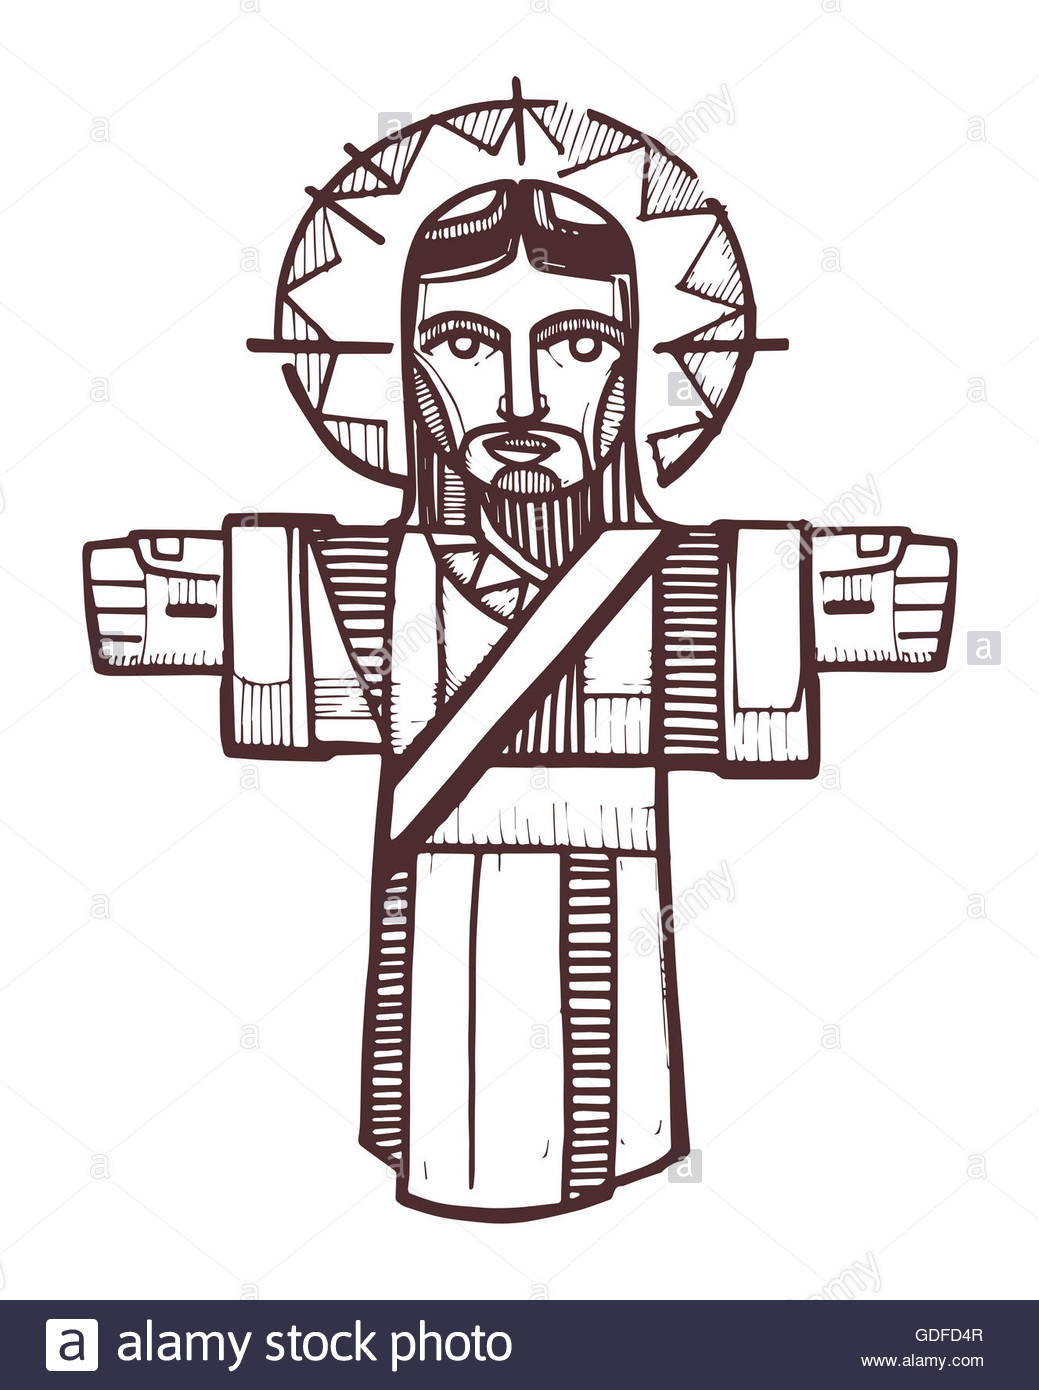 1039x1390 Hand Drawn Vector Illustration Or Drawing Of Jesus Christ